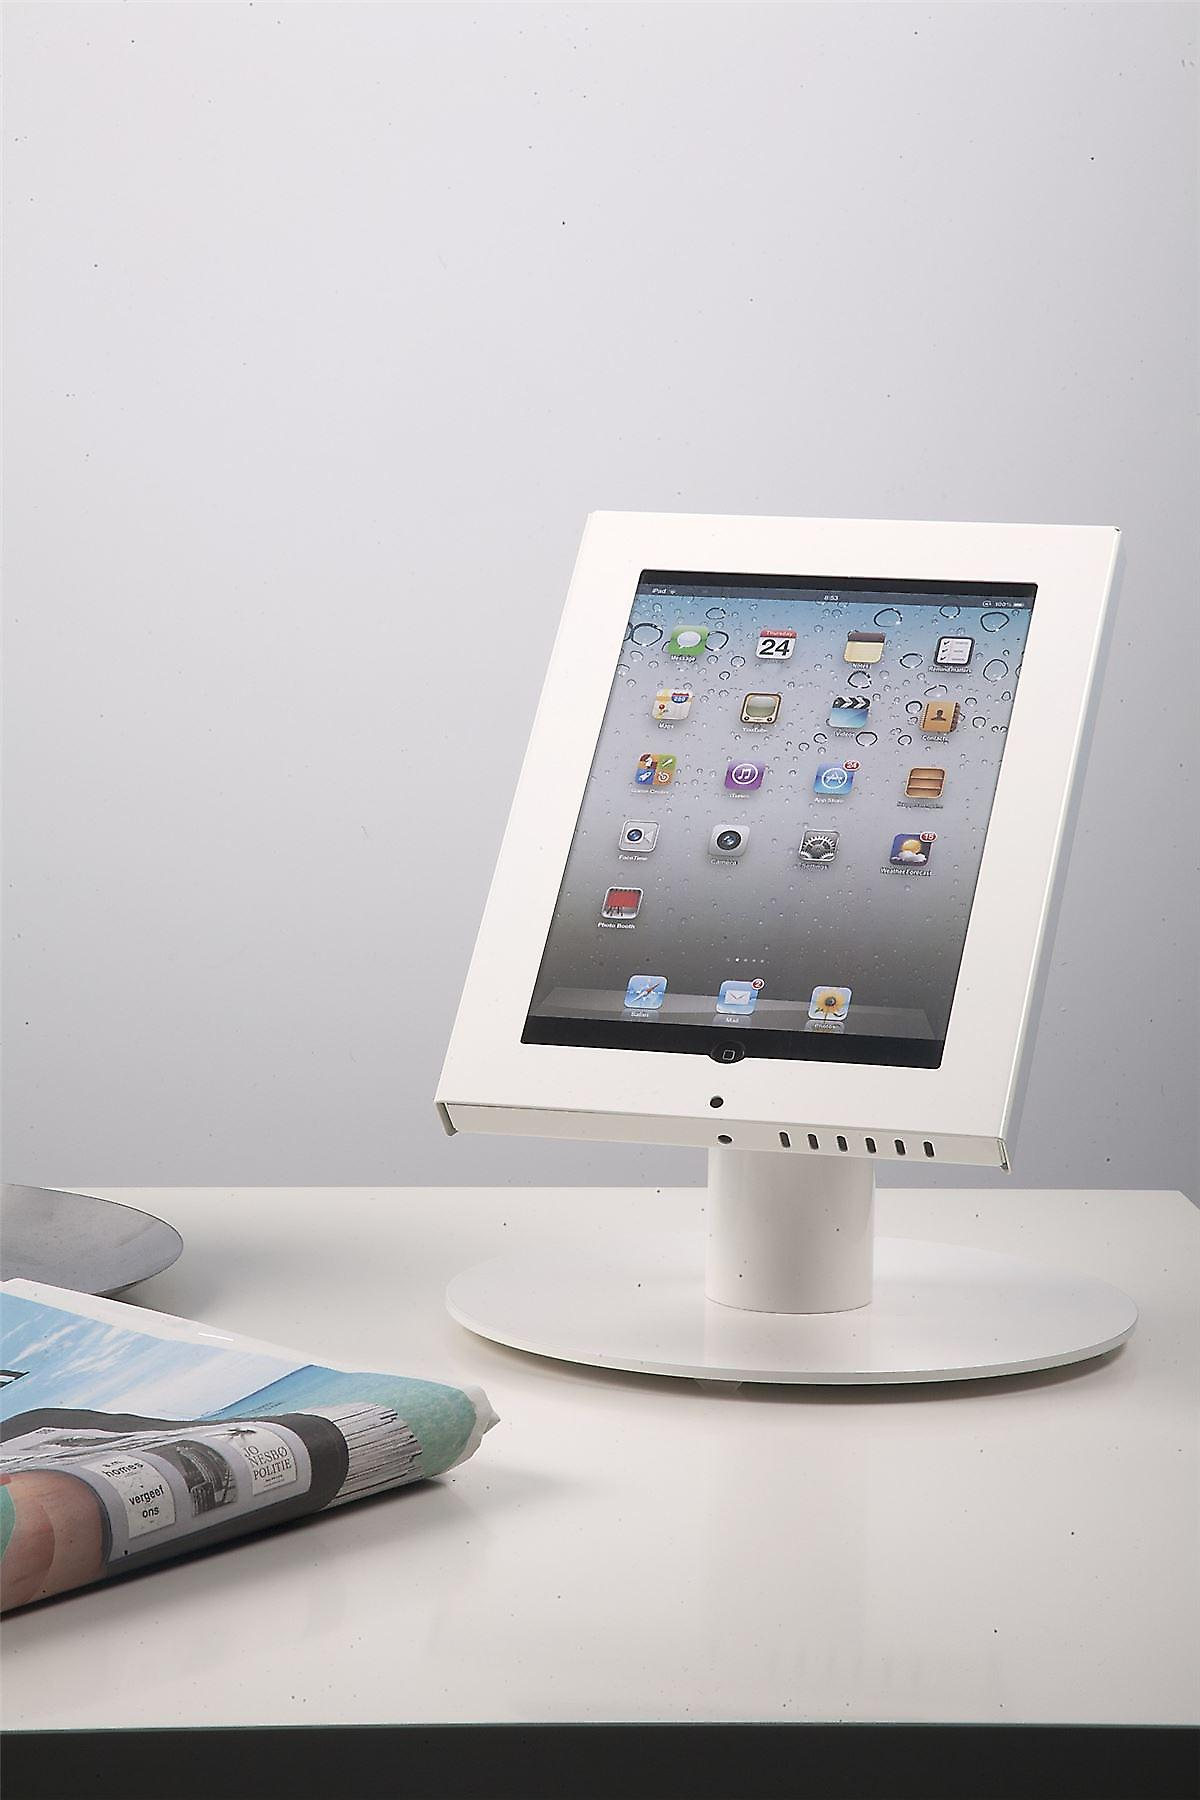 Odyssey iPad stand table model White - Suitable for iPad AIR, iPad 2-4 and many 9.7